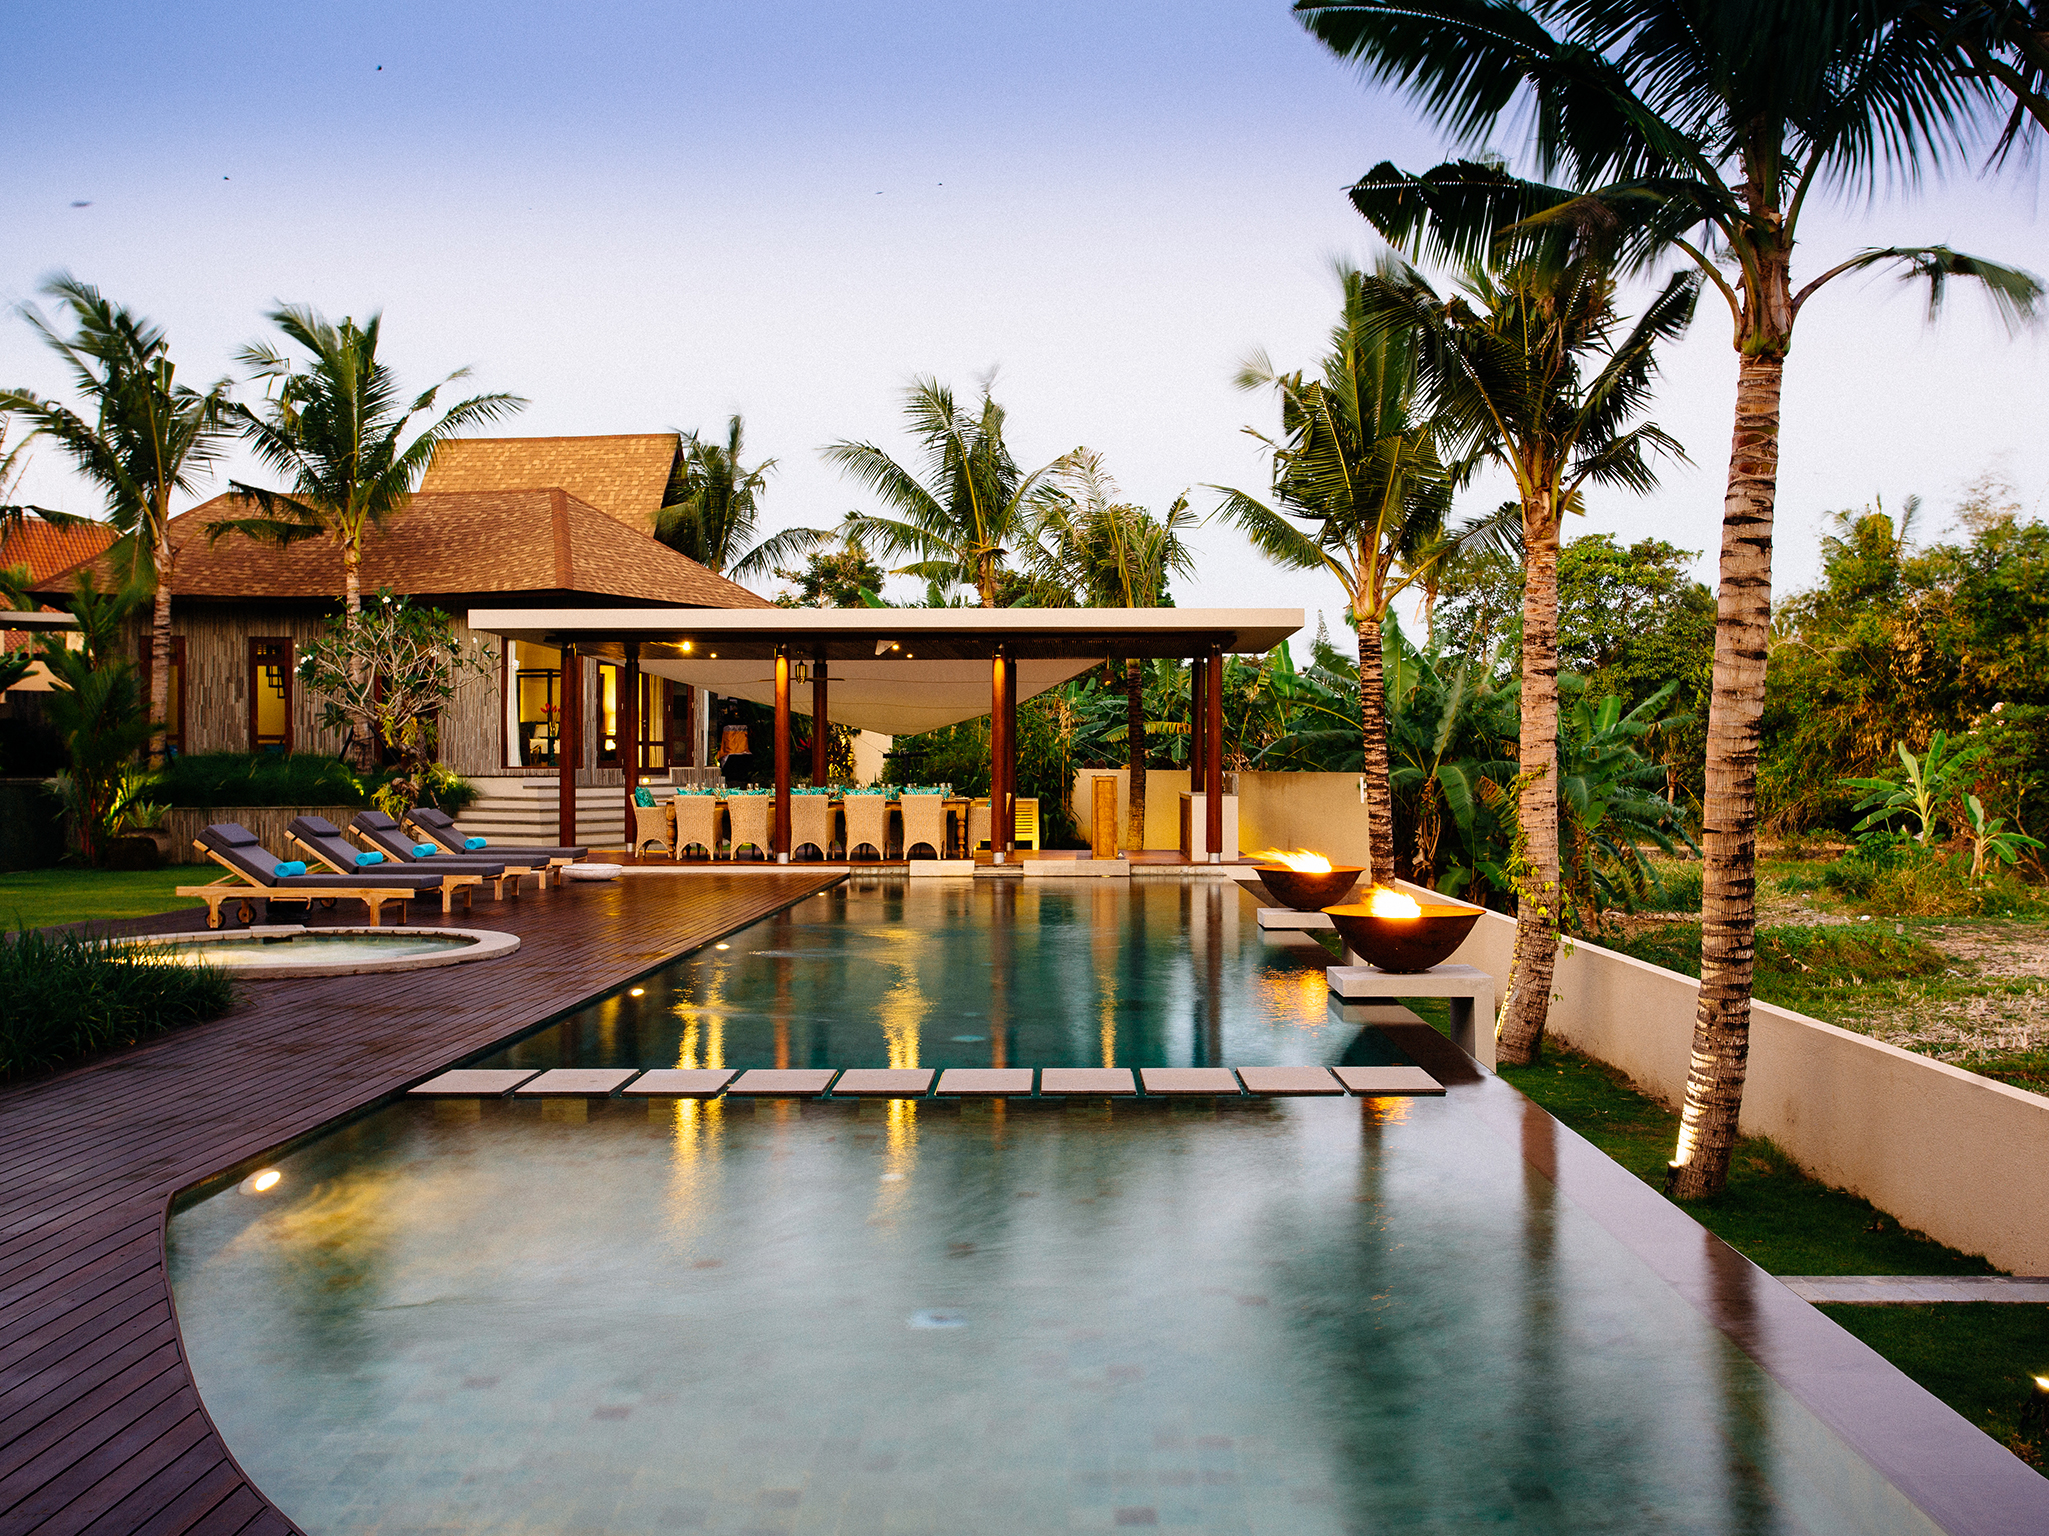 Villa Umah Daun - Pool and outdoor dining at dusk - Umah Daun, ,